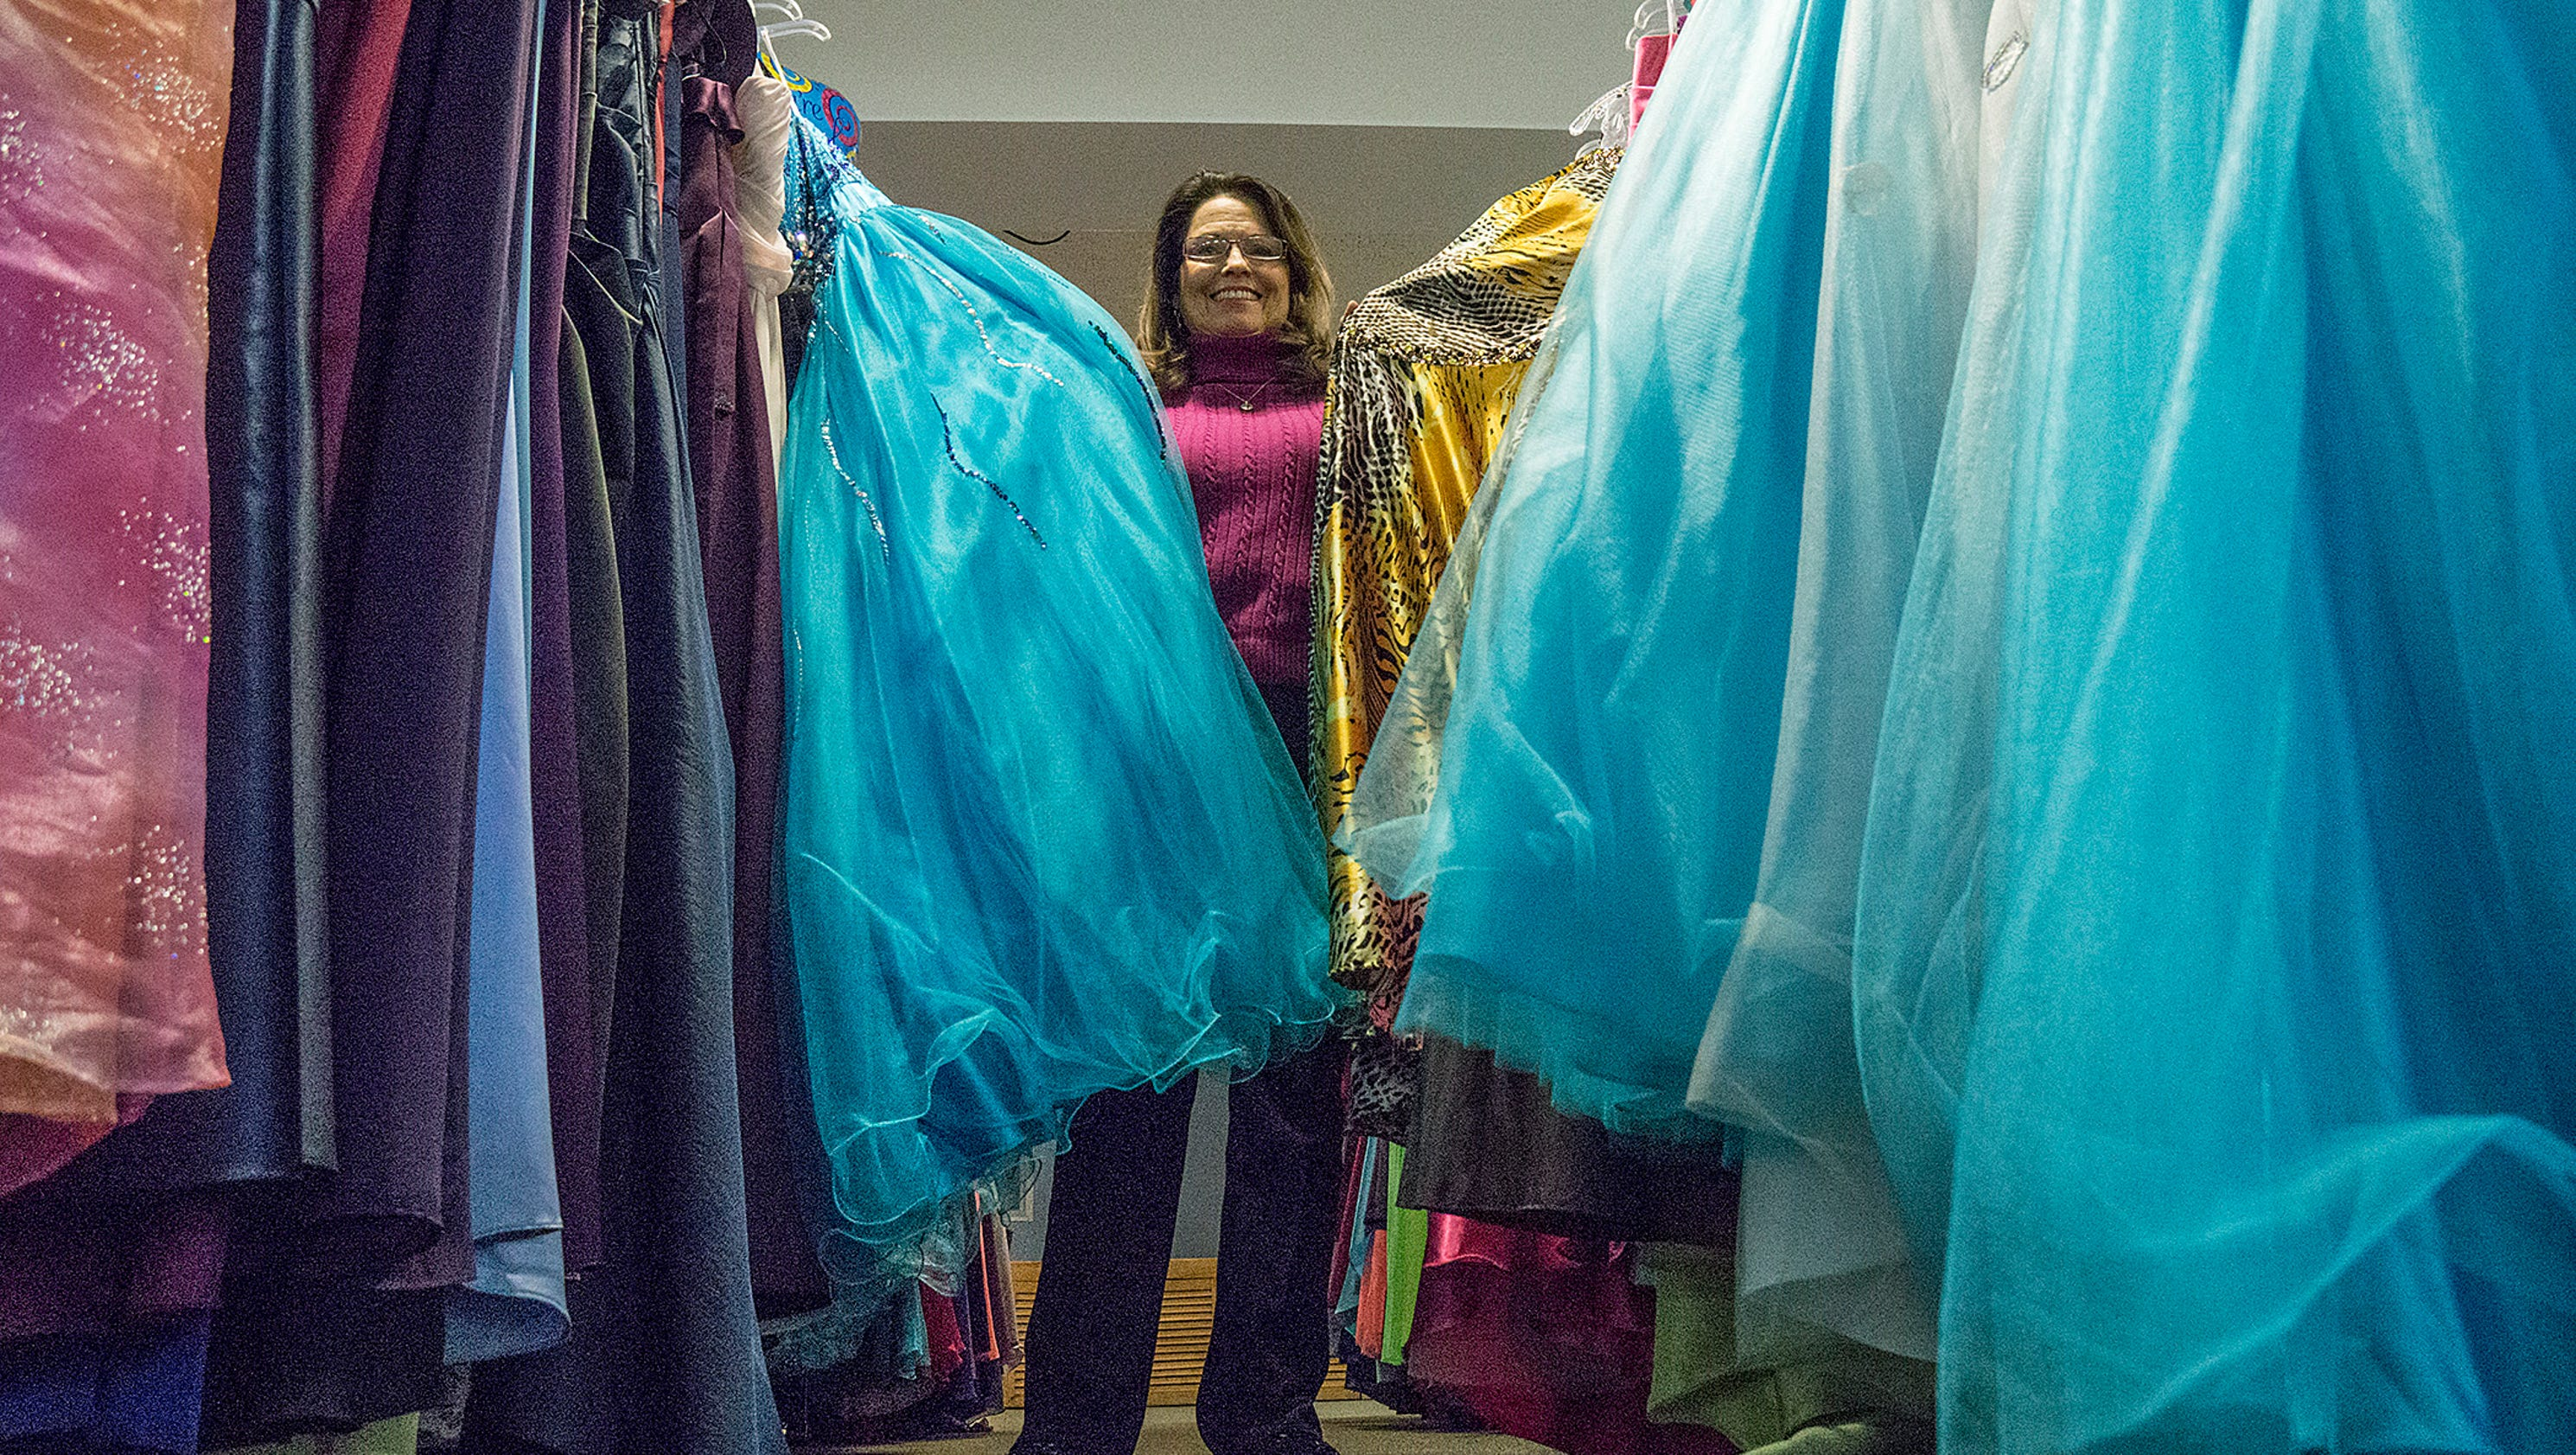 Prom dresses going for $20 this weekend in Livonia